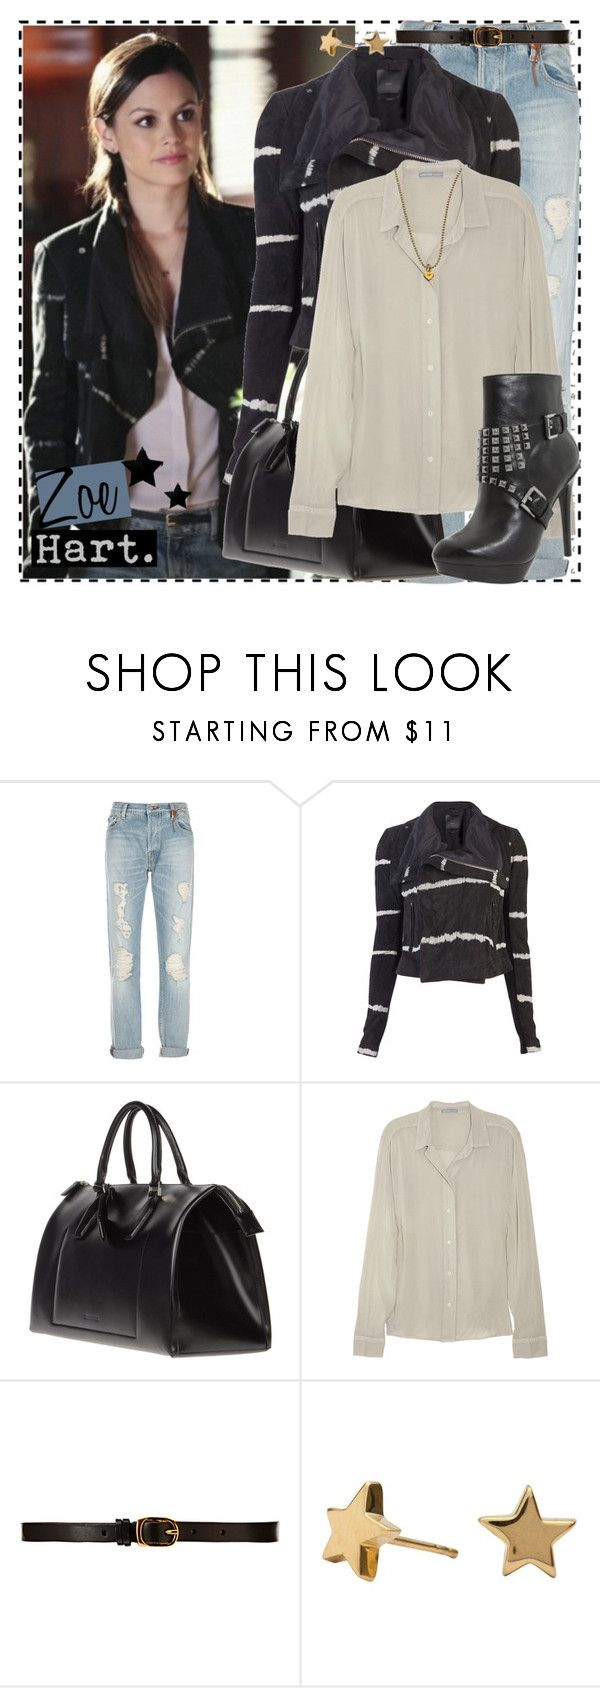 """Zoe 1.06c"" by silver-screen-style ❤ liked on Polyvore featuring HTC, Veda, Jil Sander, James Perse, MICHAEL Michael Kors, CO-OP Barneys New York, Simply Silver, Naomi Gray Designs, zoe hart and hart of dixie"